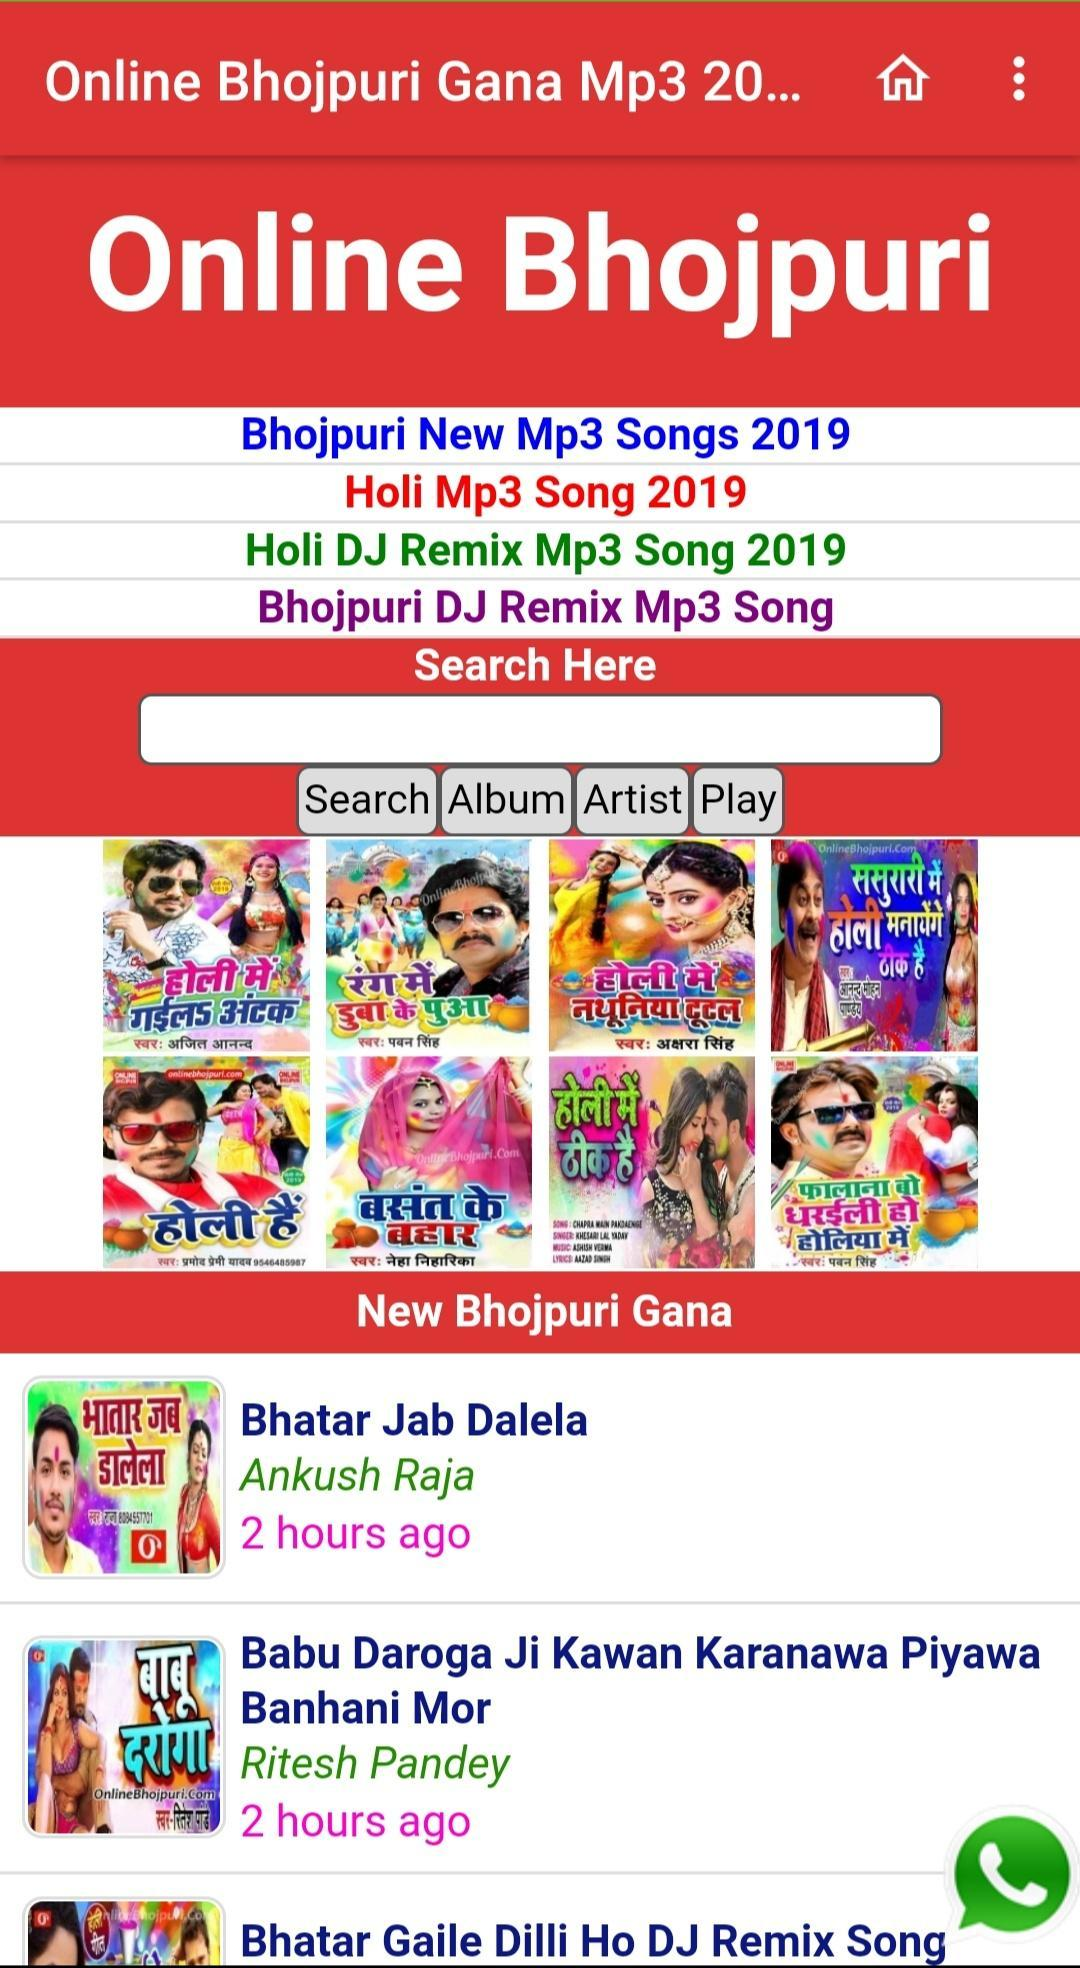 Online Bhojpuri for Android - APK Download